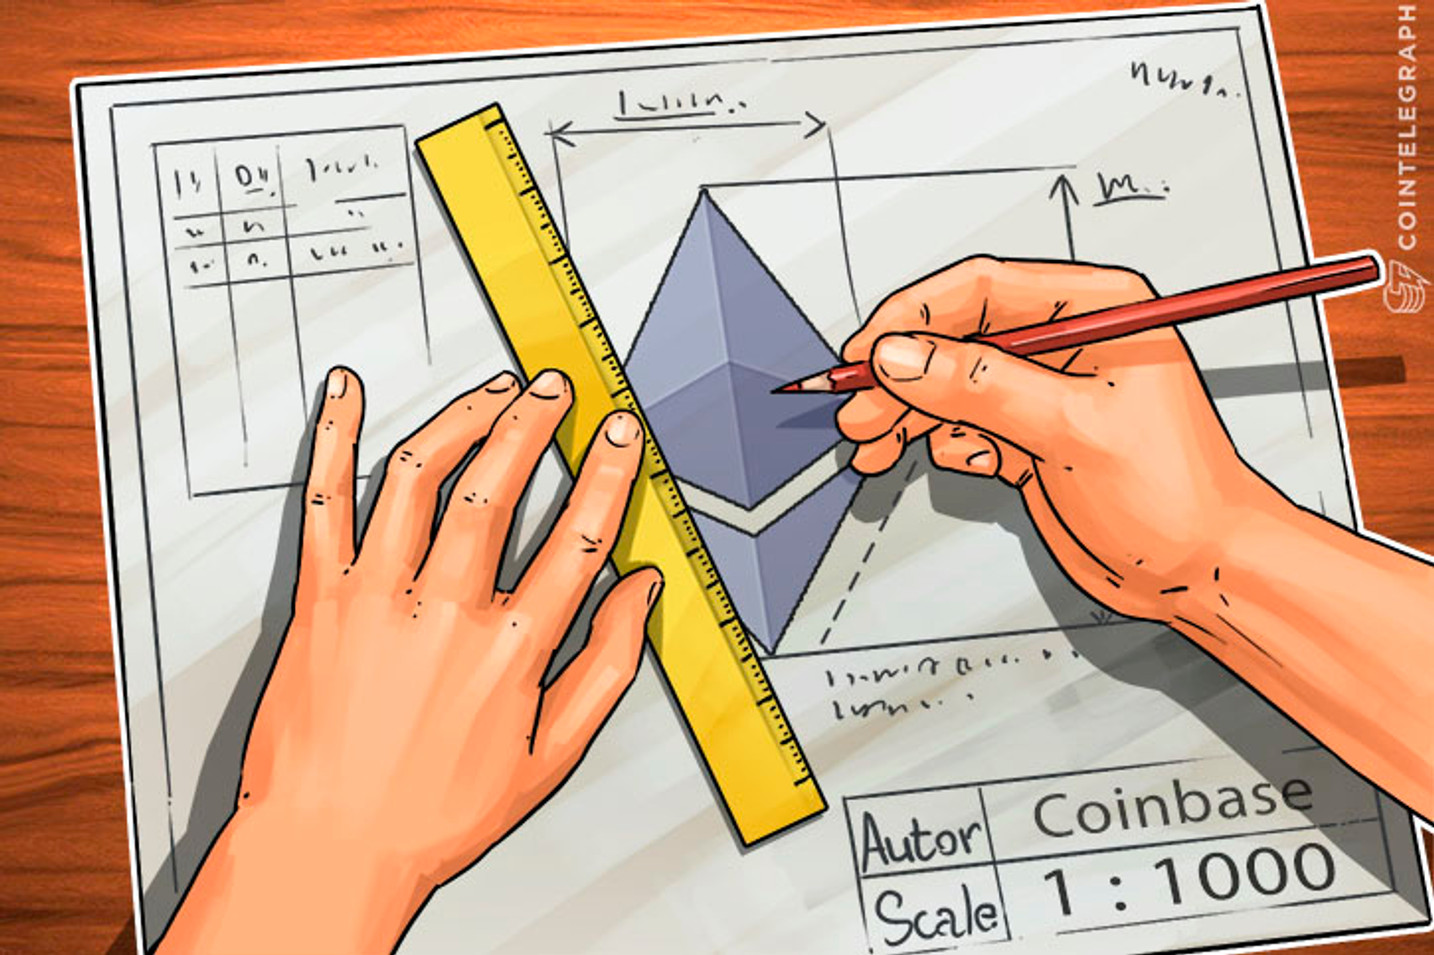 Coinbase Co-Founder: Ethereum Needs Off-Chain Scaling Solutions to Scale